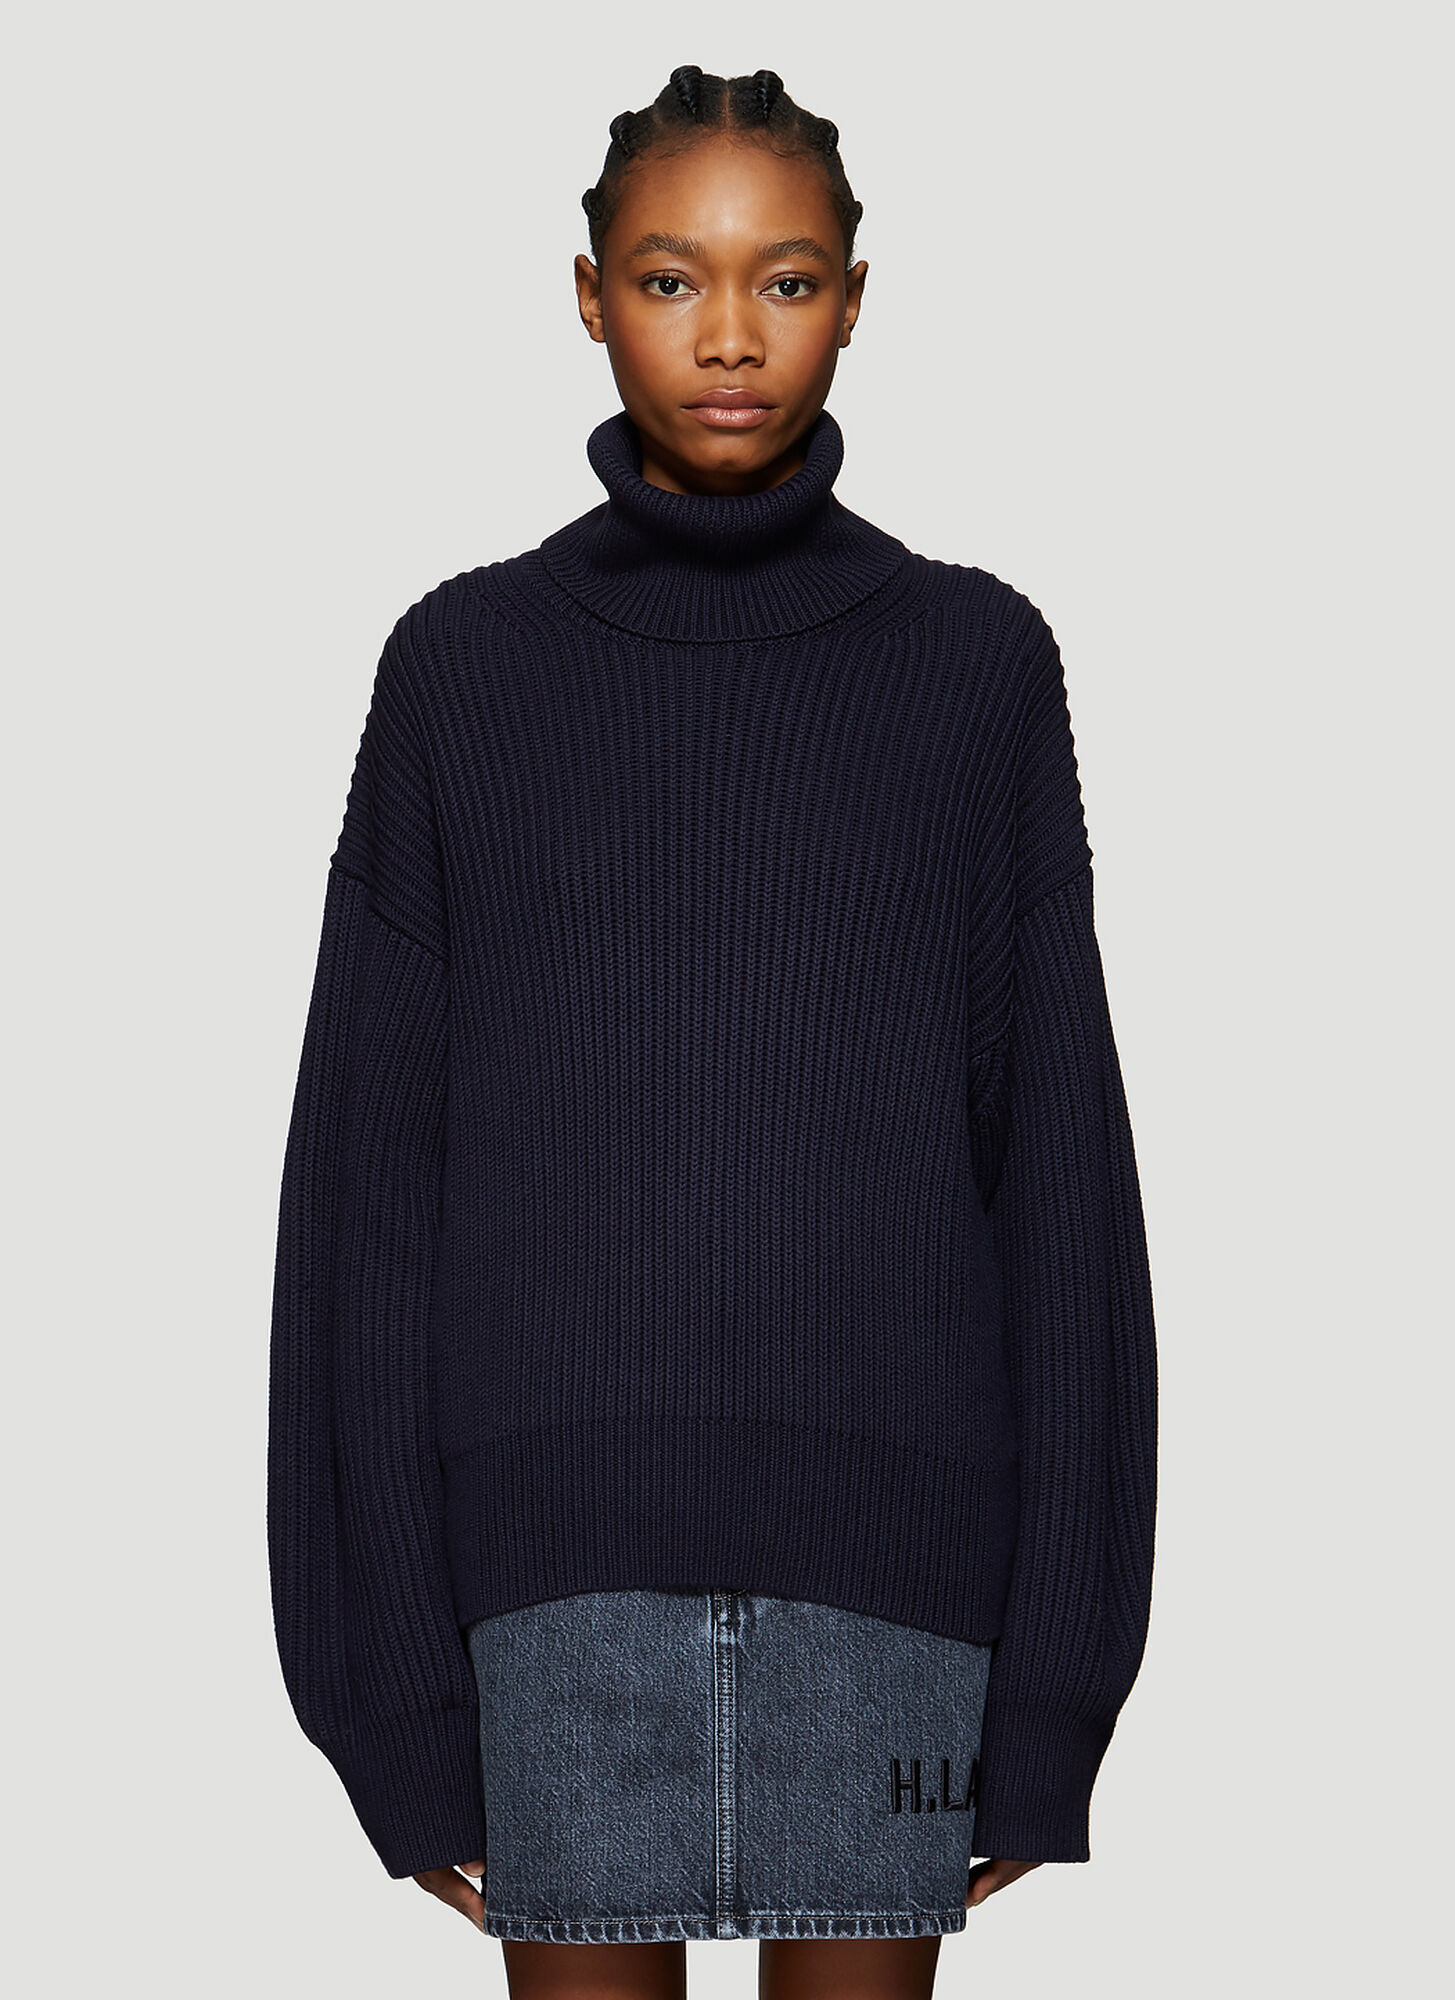 Photo of Helmut Lang Roll-Neck Ribbed Knit Sweater in Navy - Helmut Lang Knitwear